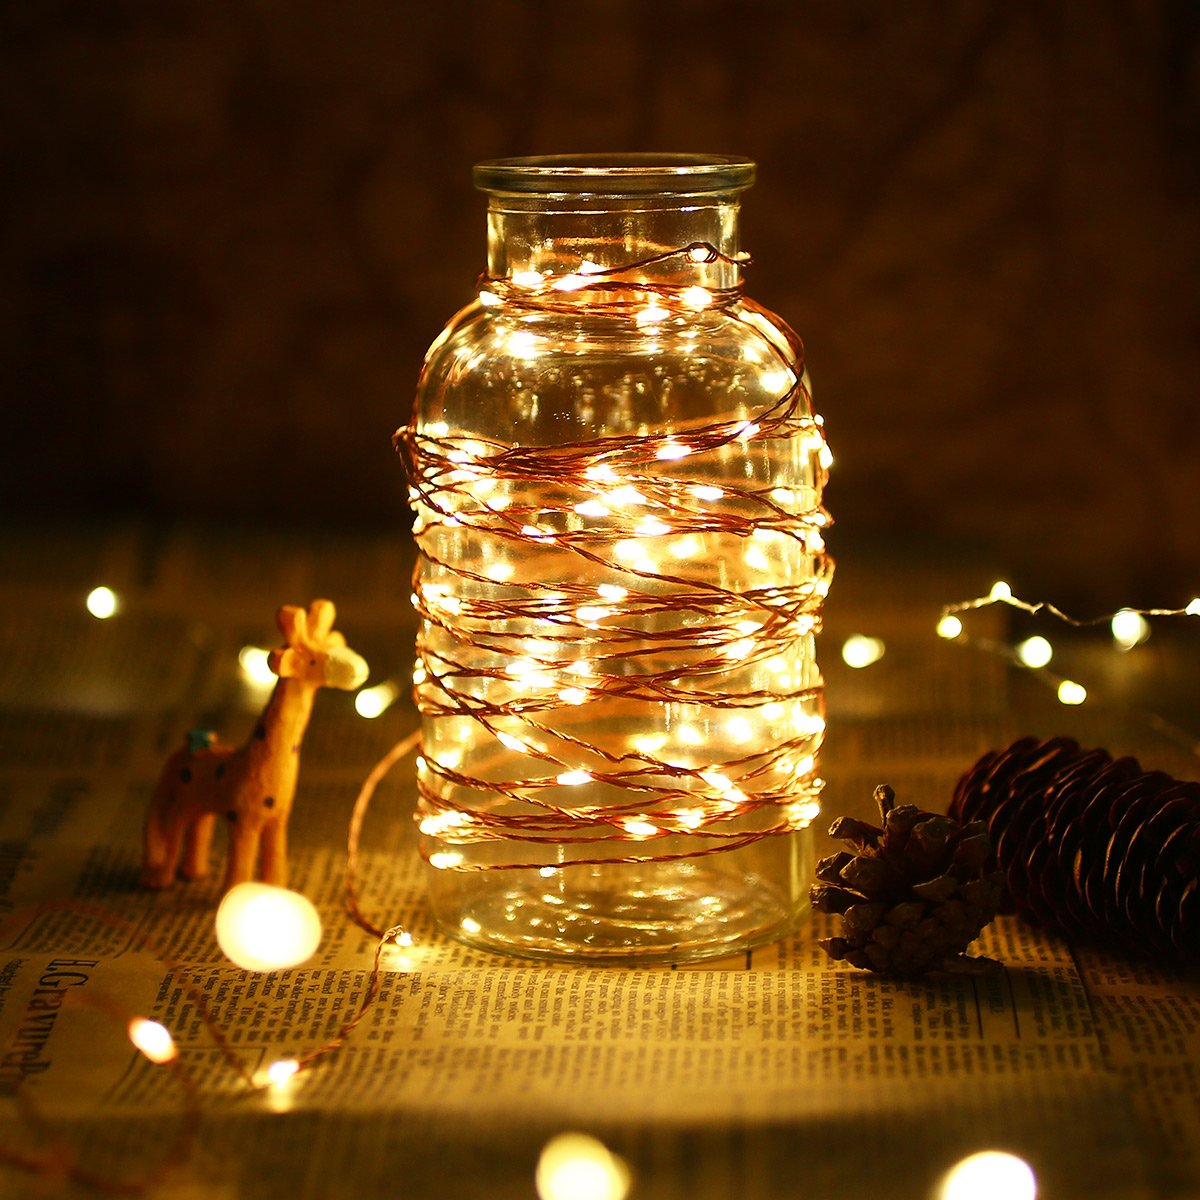 LE 200 LED 65ft Copper Wire String Lights Warm White Starry Fairy String Lights Waterproof Firefly Lights for Indoor Outdoor Decoration for Home Garden Patio Wedding Party, UL Power Adaptor Included by Lighting EVER